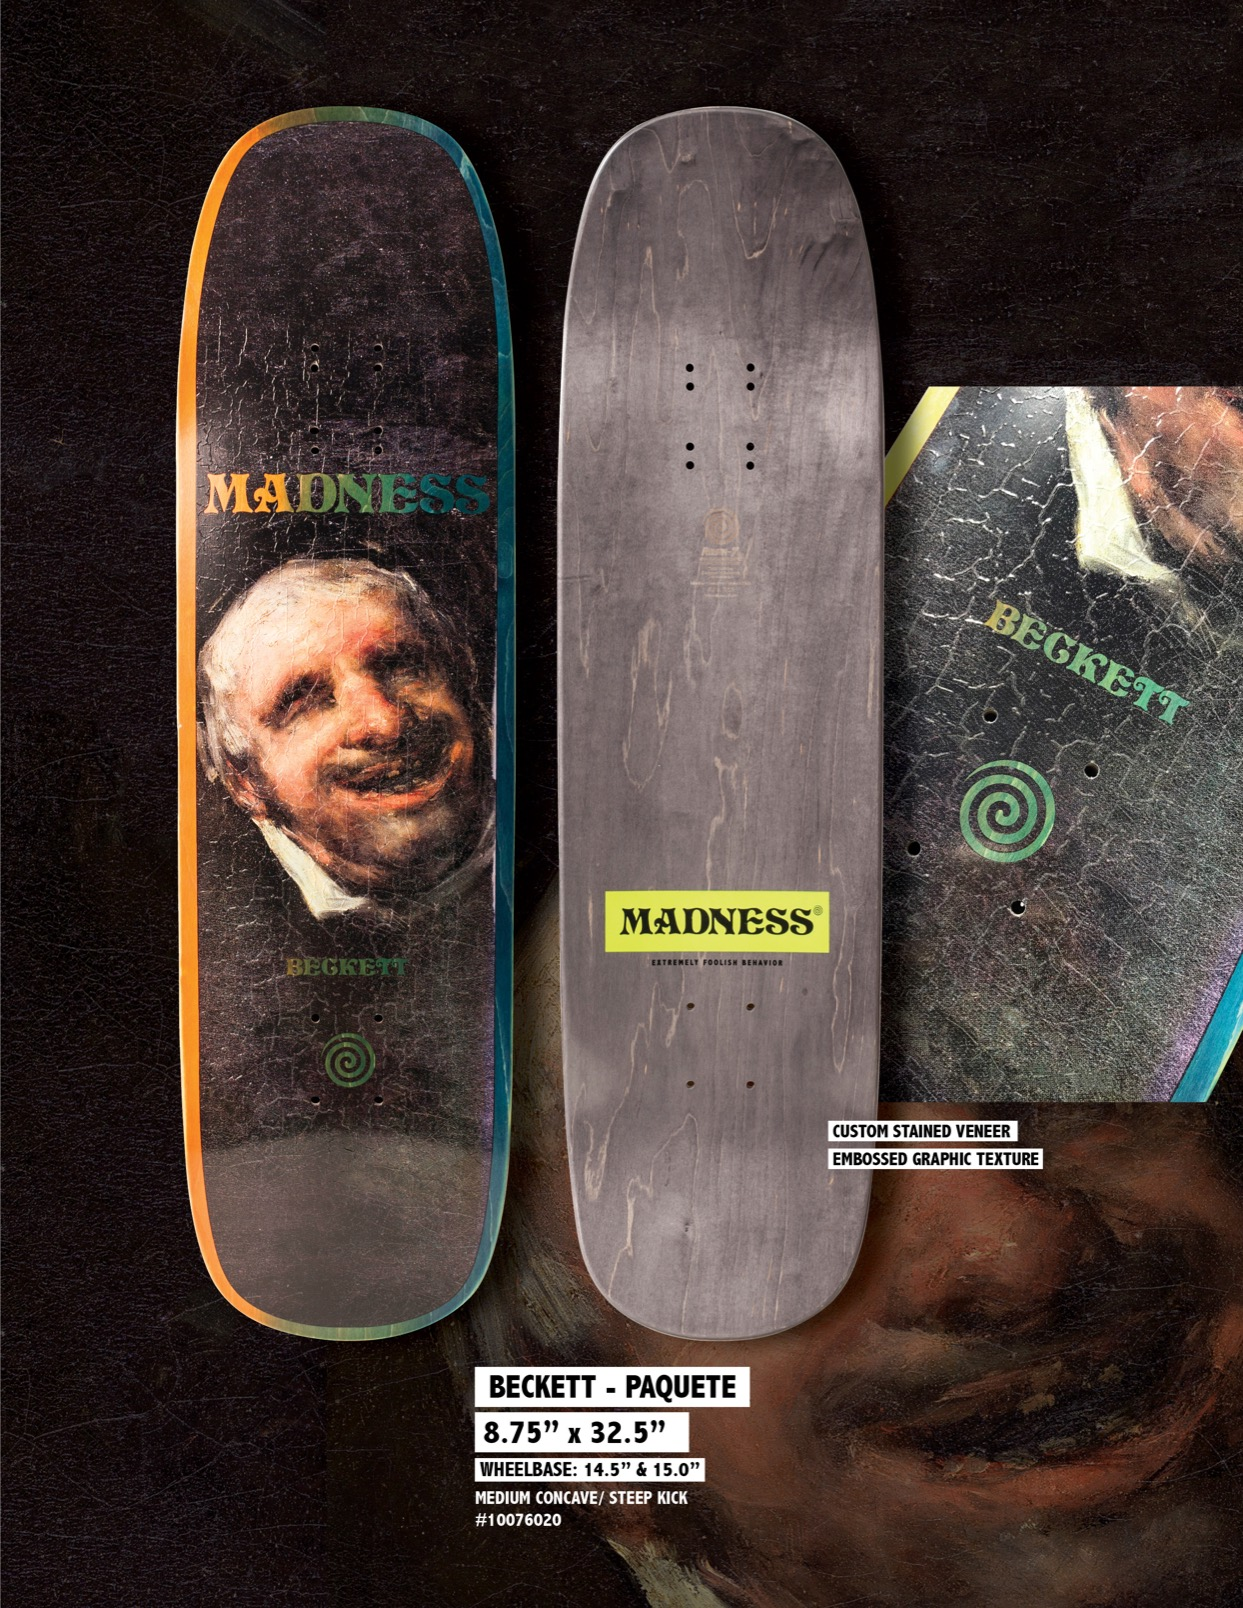 Madness_Skateboards_Sam_Beckett_Paquete.jpg